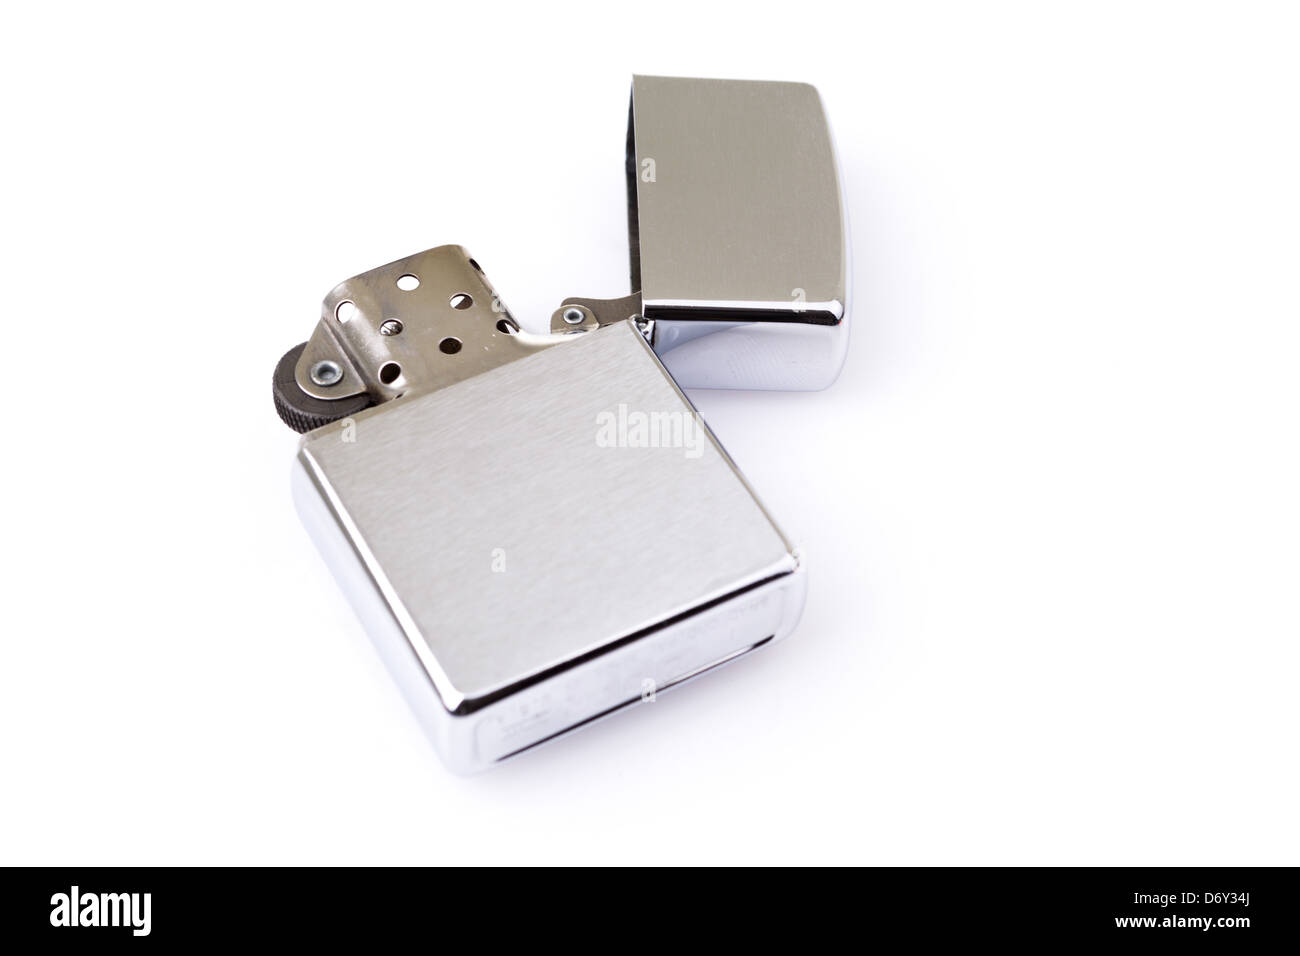 Silver metal zippo lighter isolated on white - Stock Image